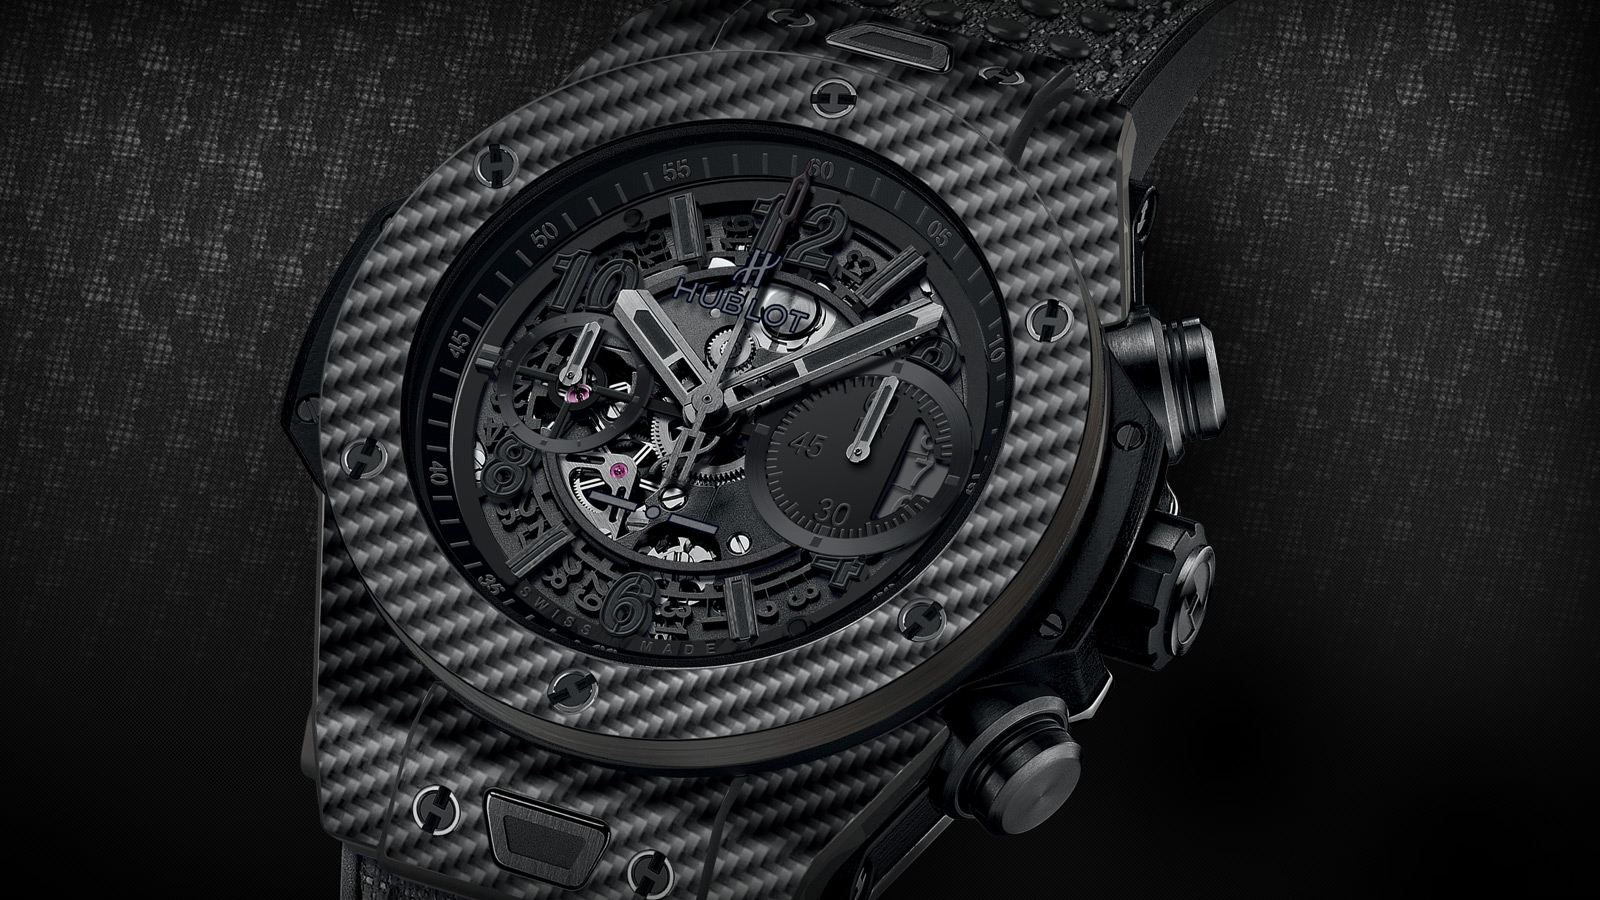 watches-hublot-big-bang-chicago-geneva-seal-7